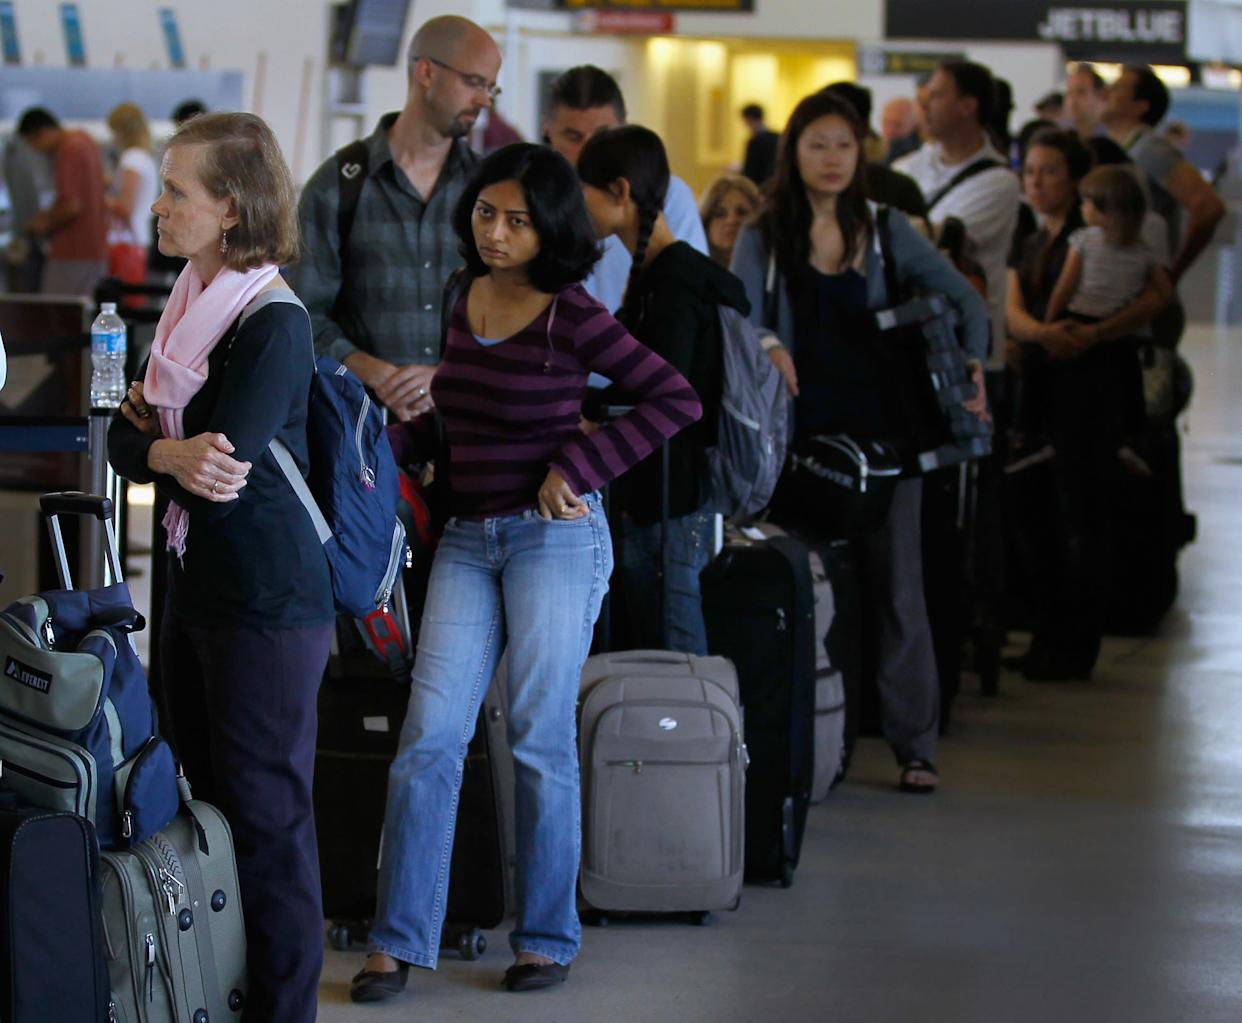 Airline travellers stand in line to get to the United airlines ticketing counter at Newark Airport in Newark, New Jersey on Aug. 29, 2011.